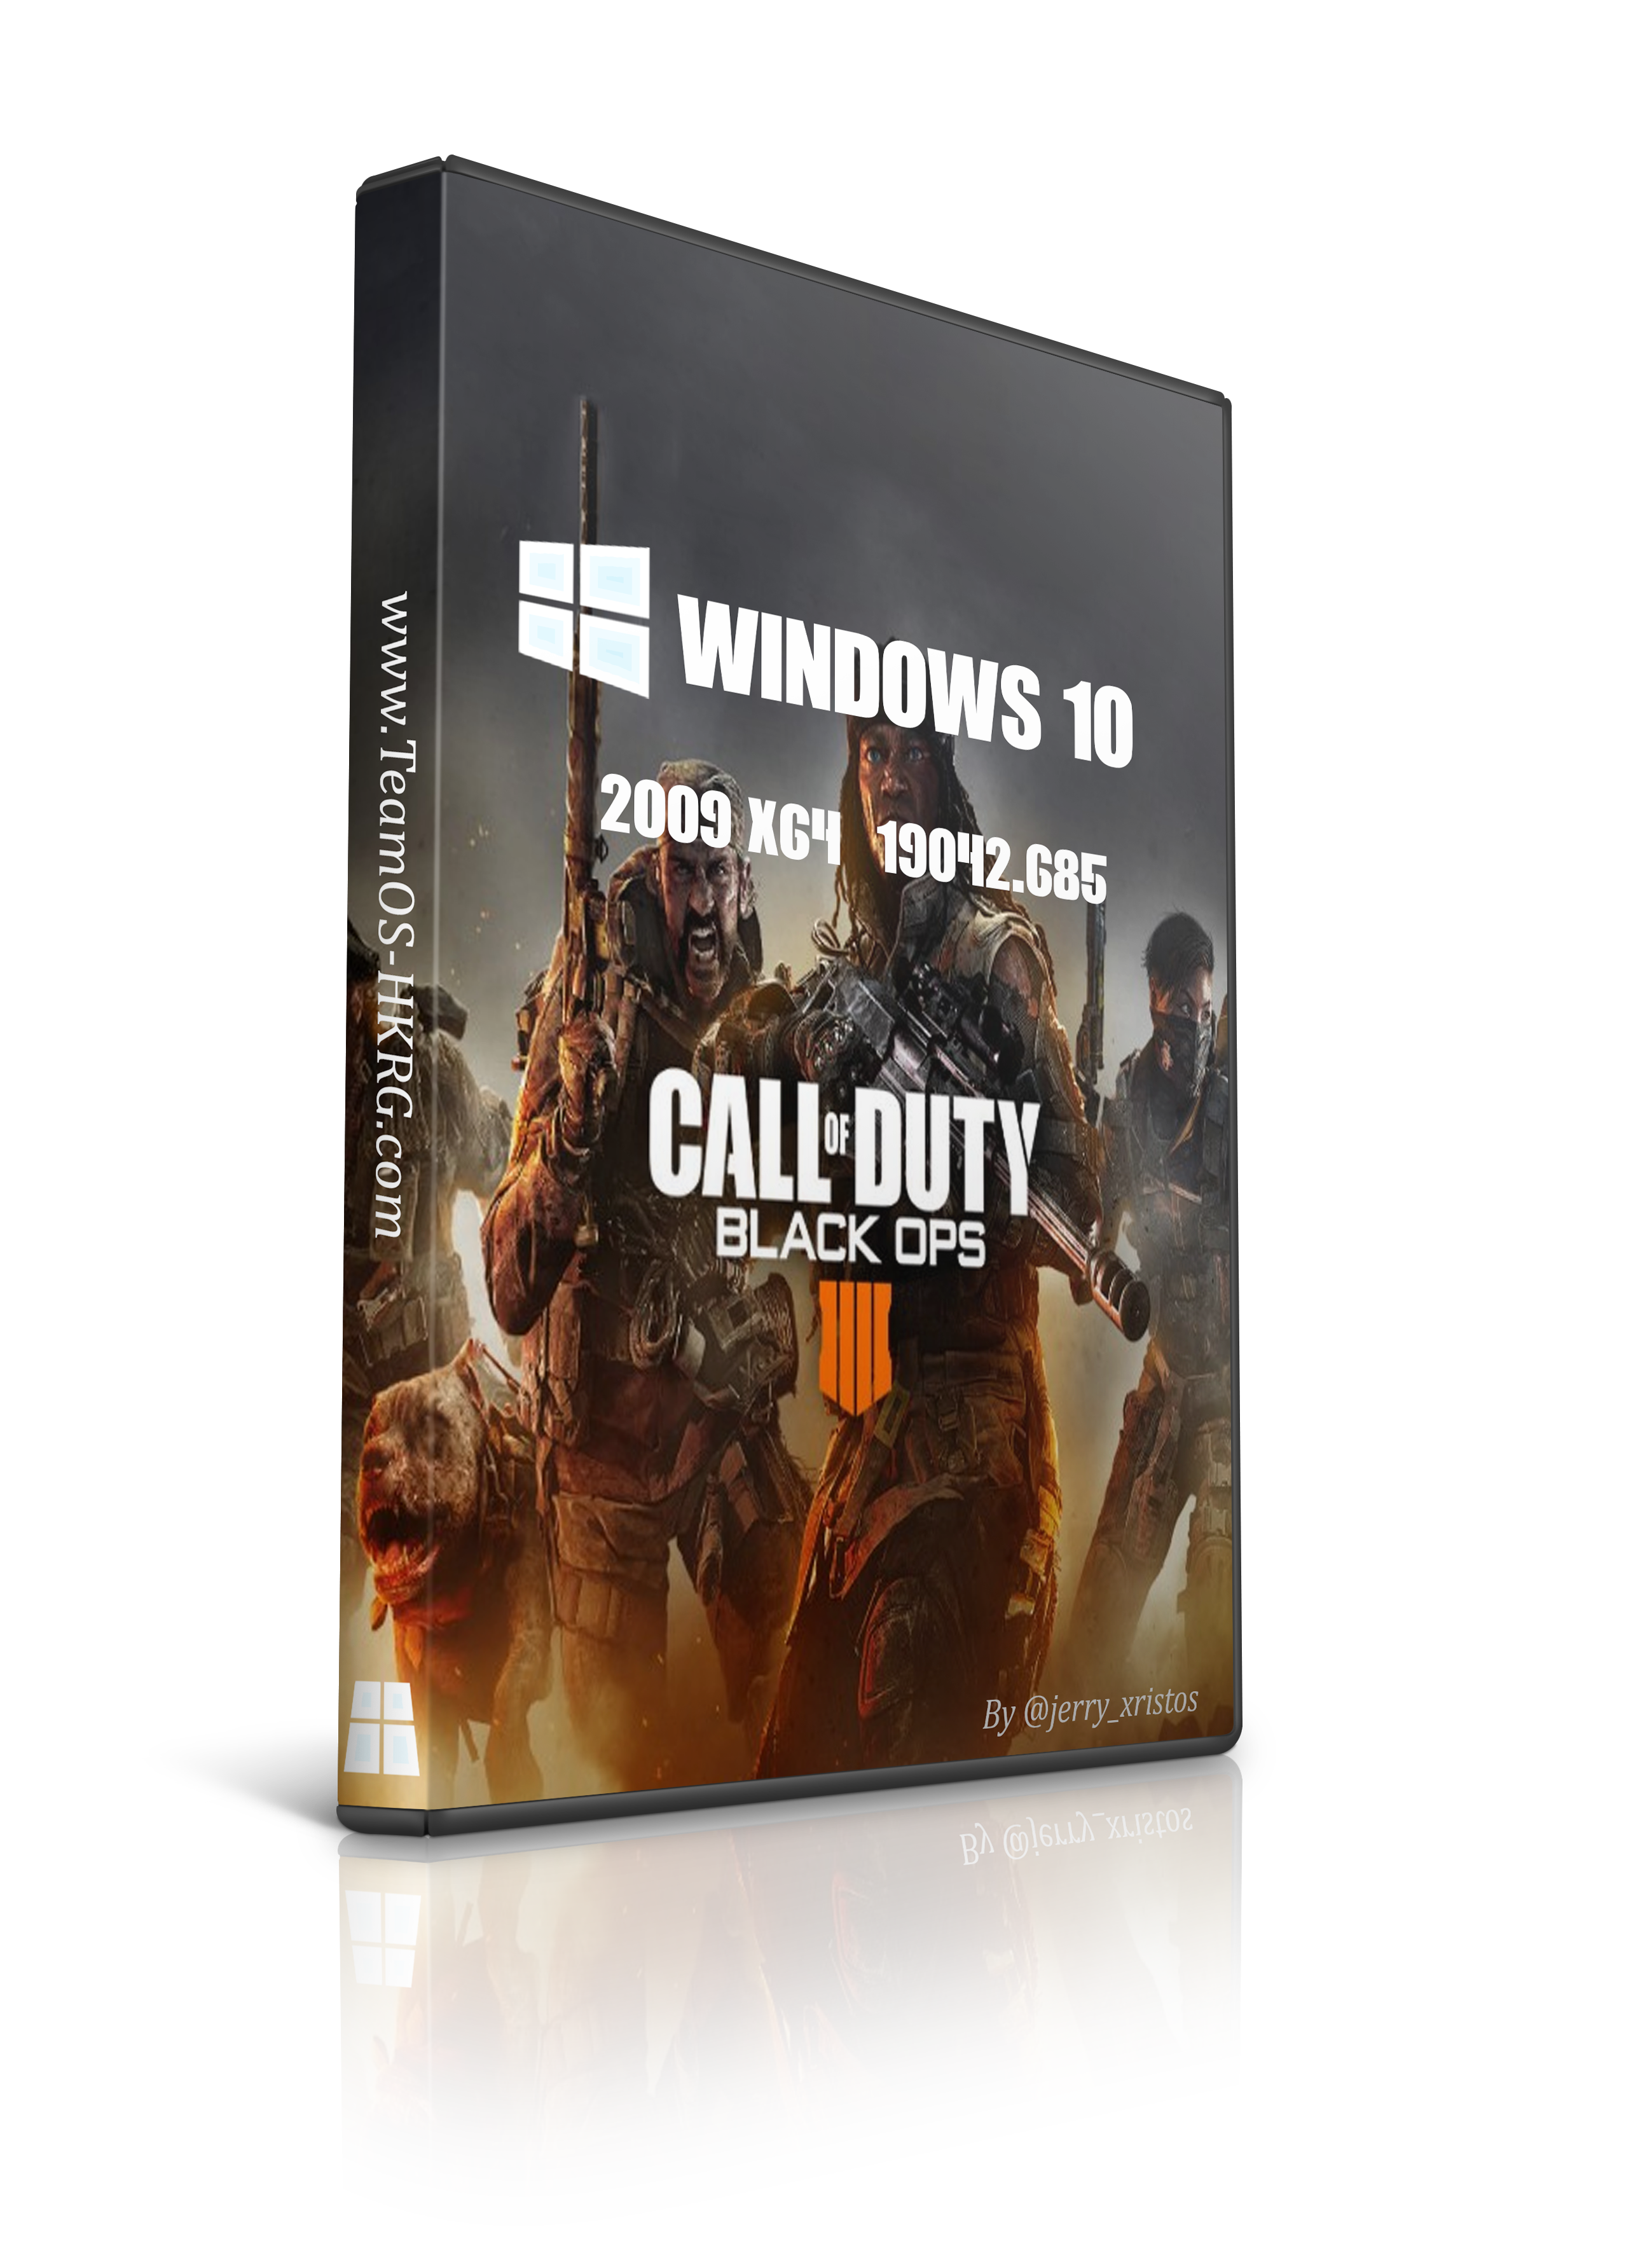 Call of Duty Black Ops windows 10 2009 (19042.685)